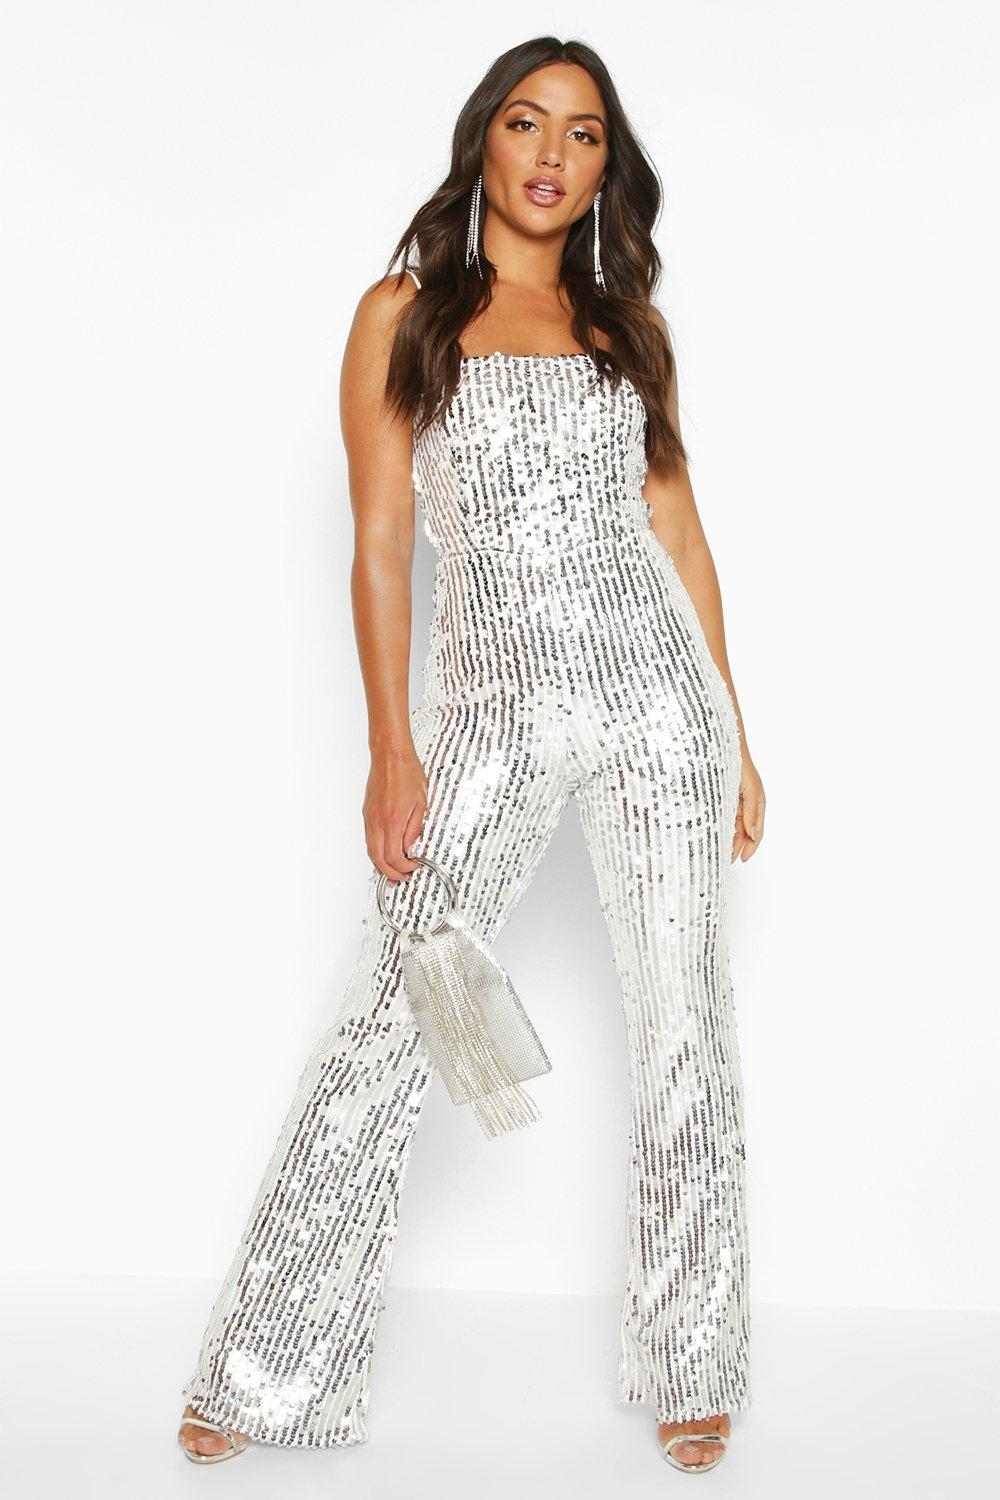 promotion well known Discover Sequin Cami Flared Leg Jumpsuit | Boohoo